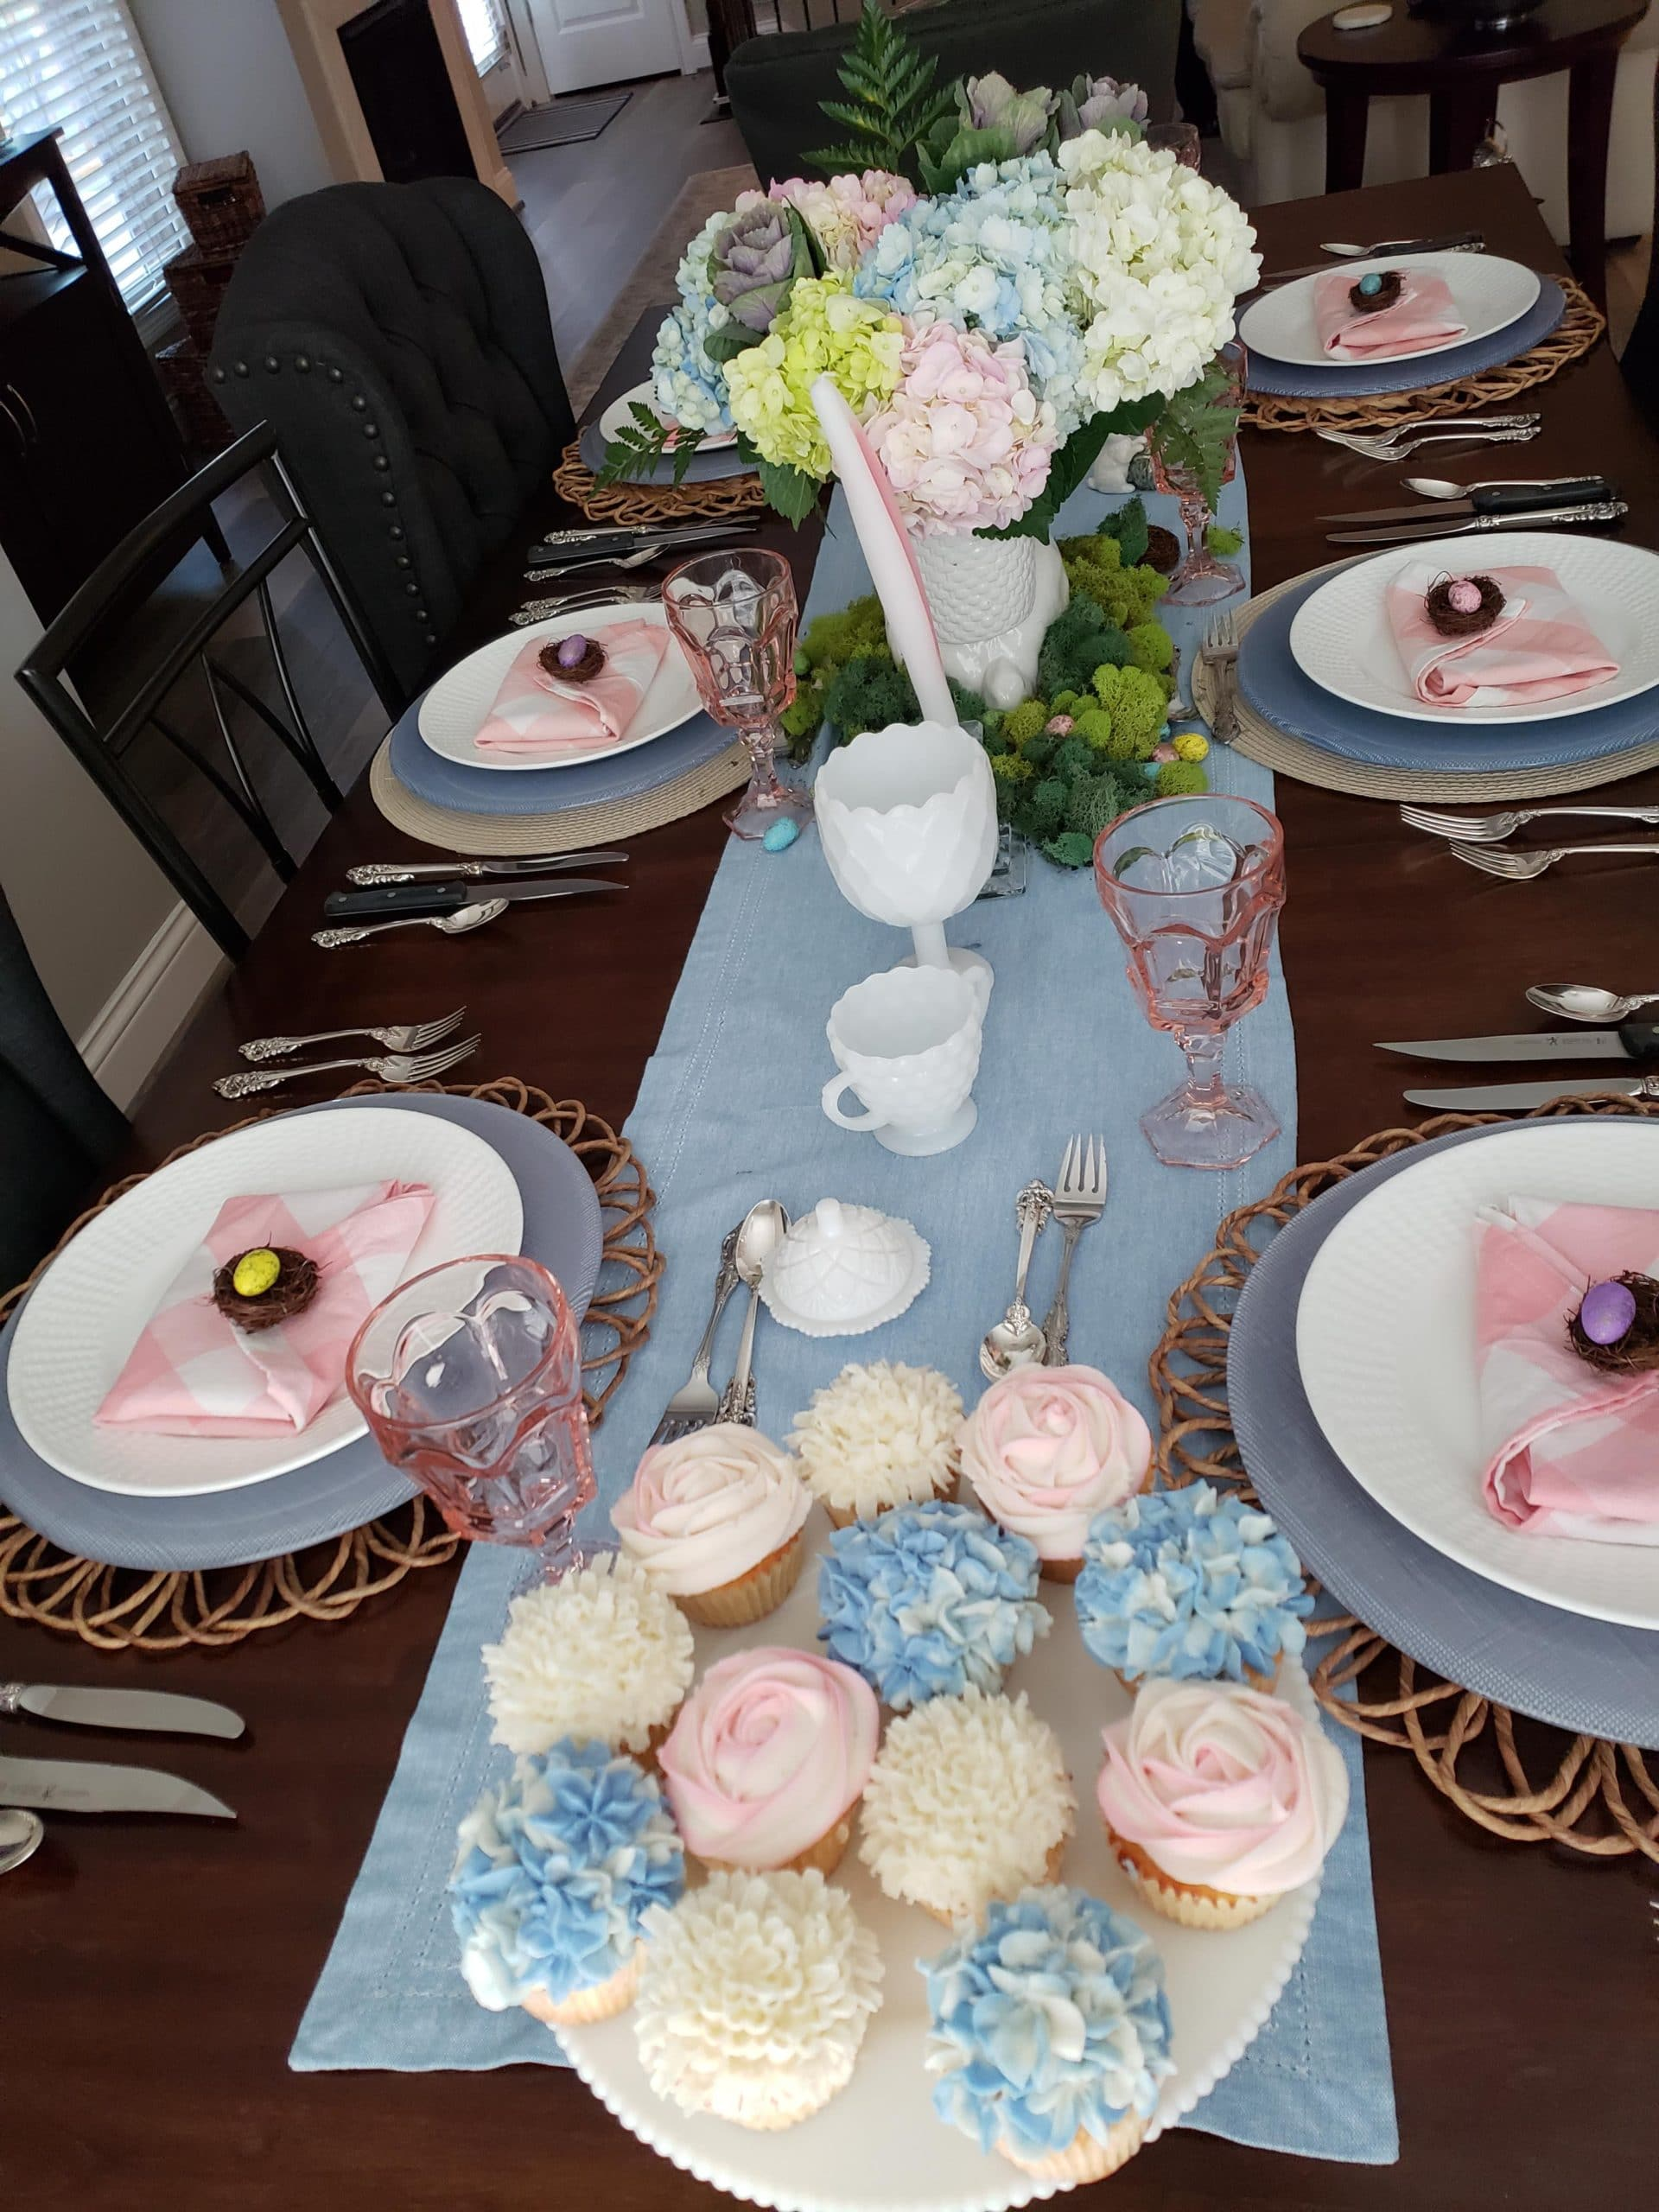 A sample of our formal Easter setting.